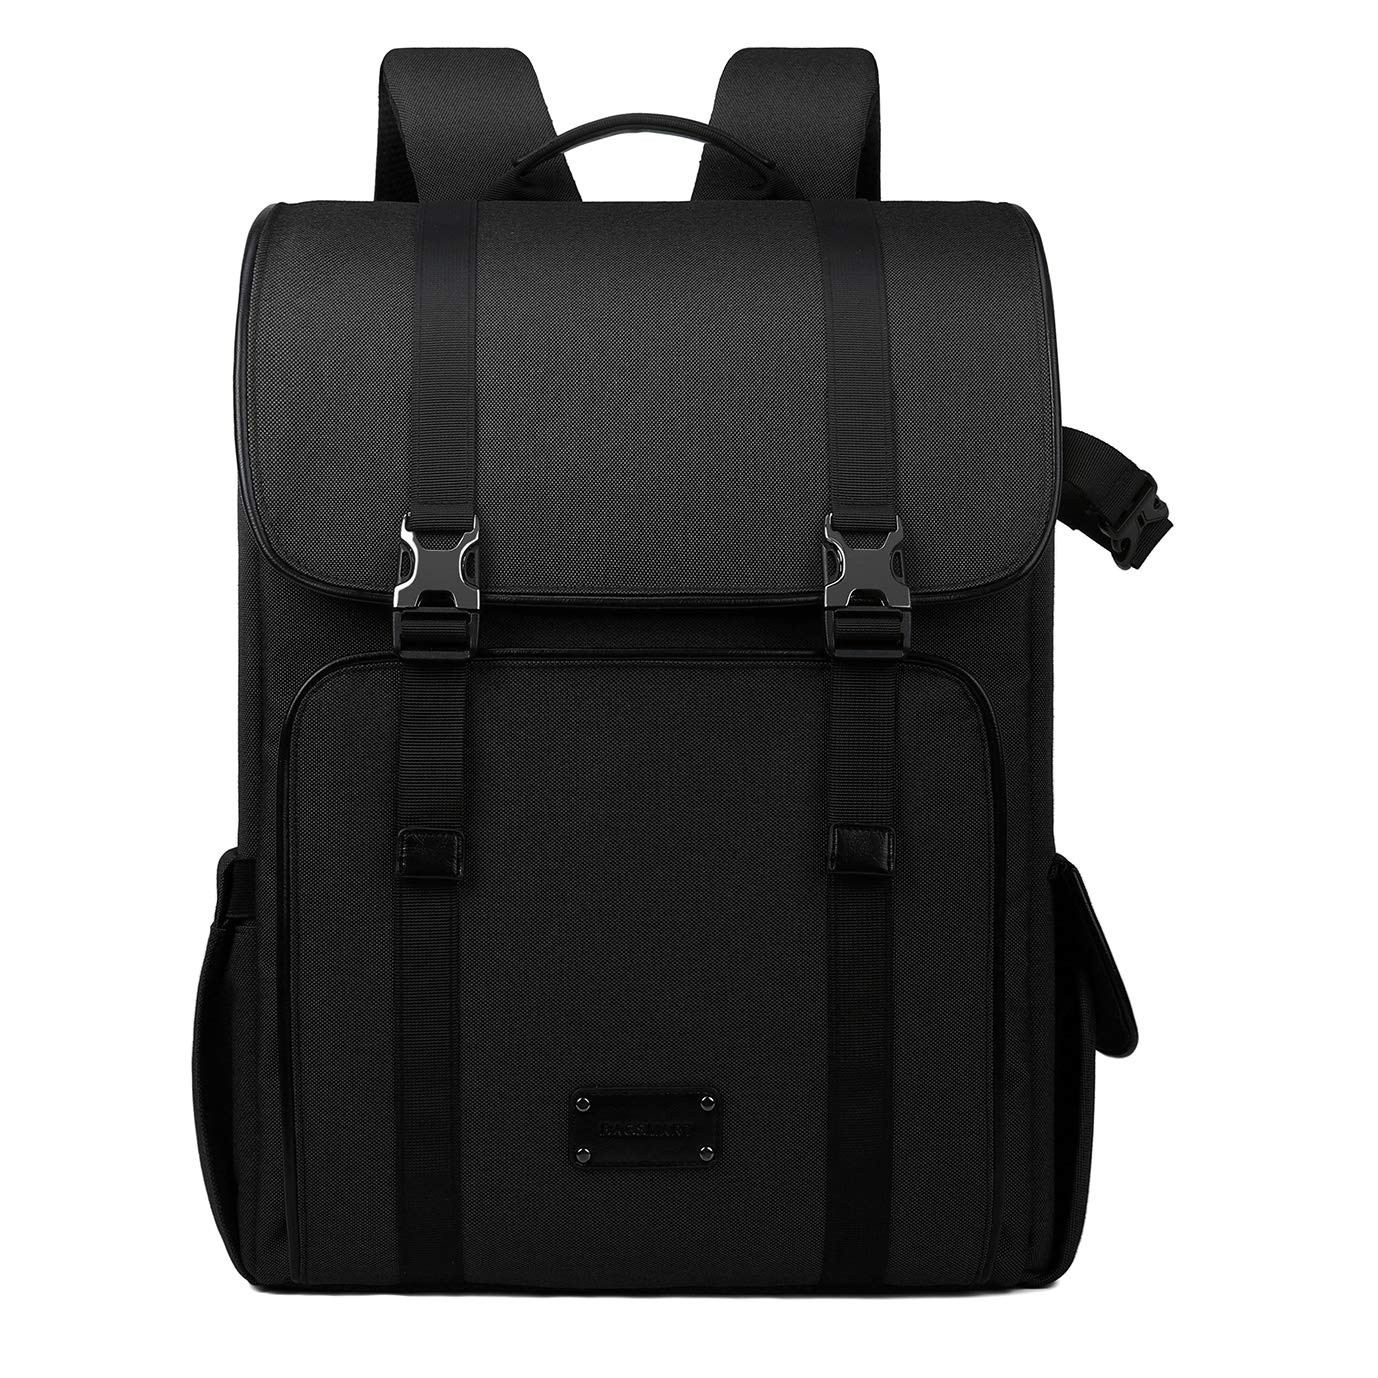 BAGSMART Camera Backpack DSLR Large Camera Bag Rucksack for 70-200mm Lens & 15.6' Laptop with Waterproof Rain Cover & Tripod Holder